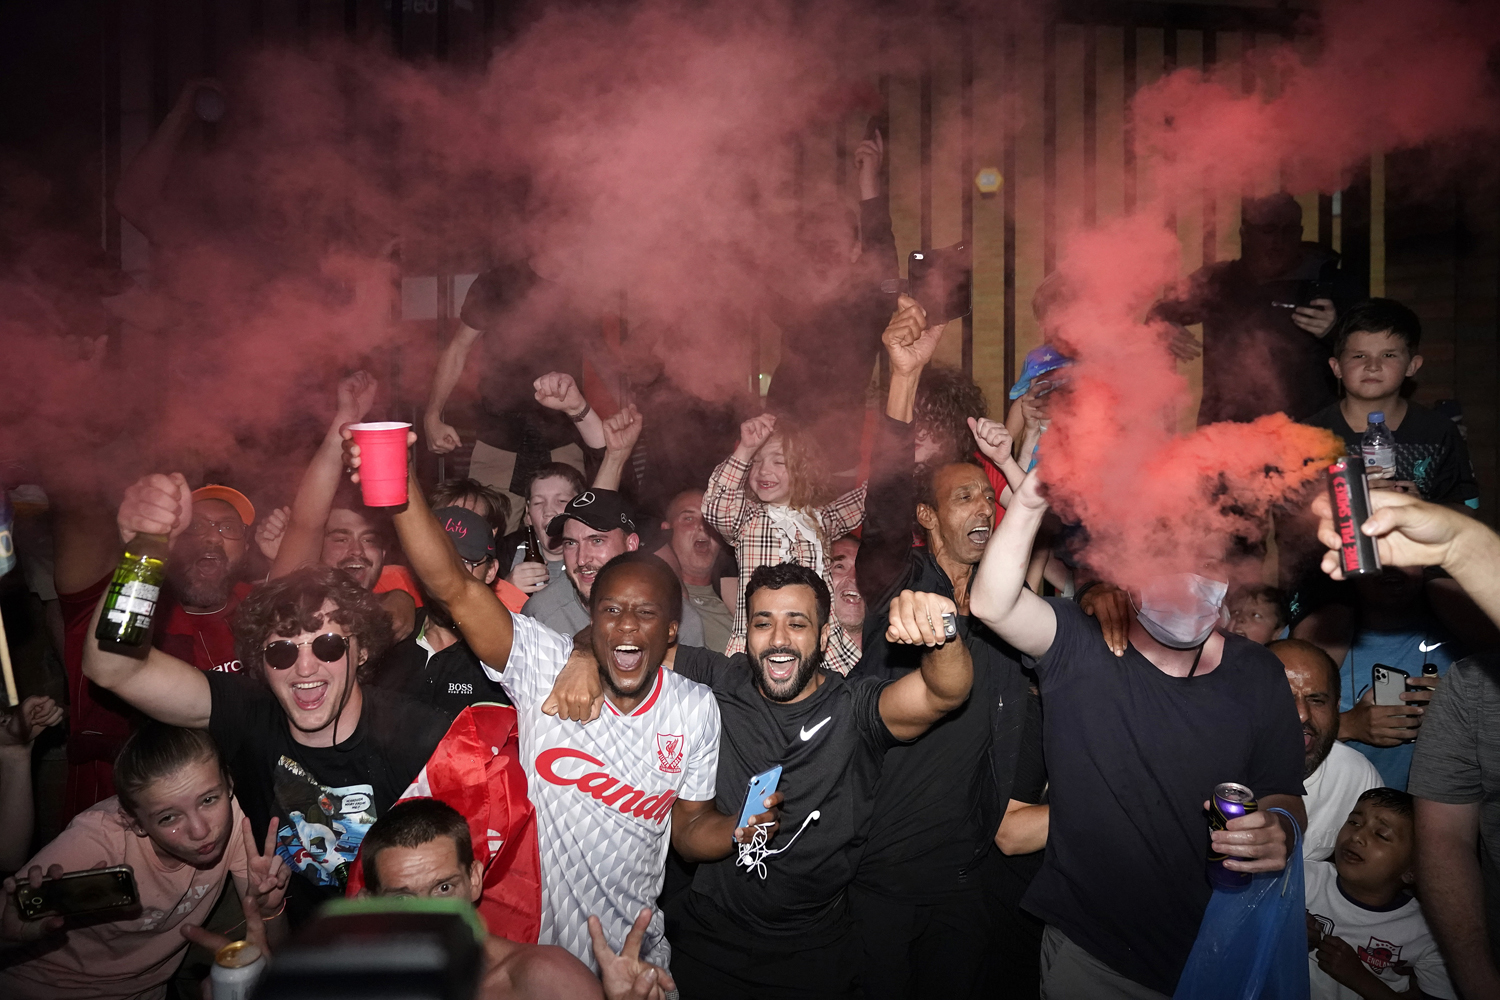 Liverpool fans celebrate Chelsea's victory against Manchester City, which ensured Liverpool of capturing its first Premier League title since 1990. | Christopher Furlong/Getty Images